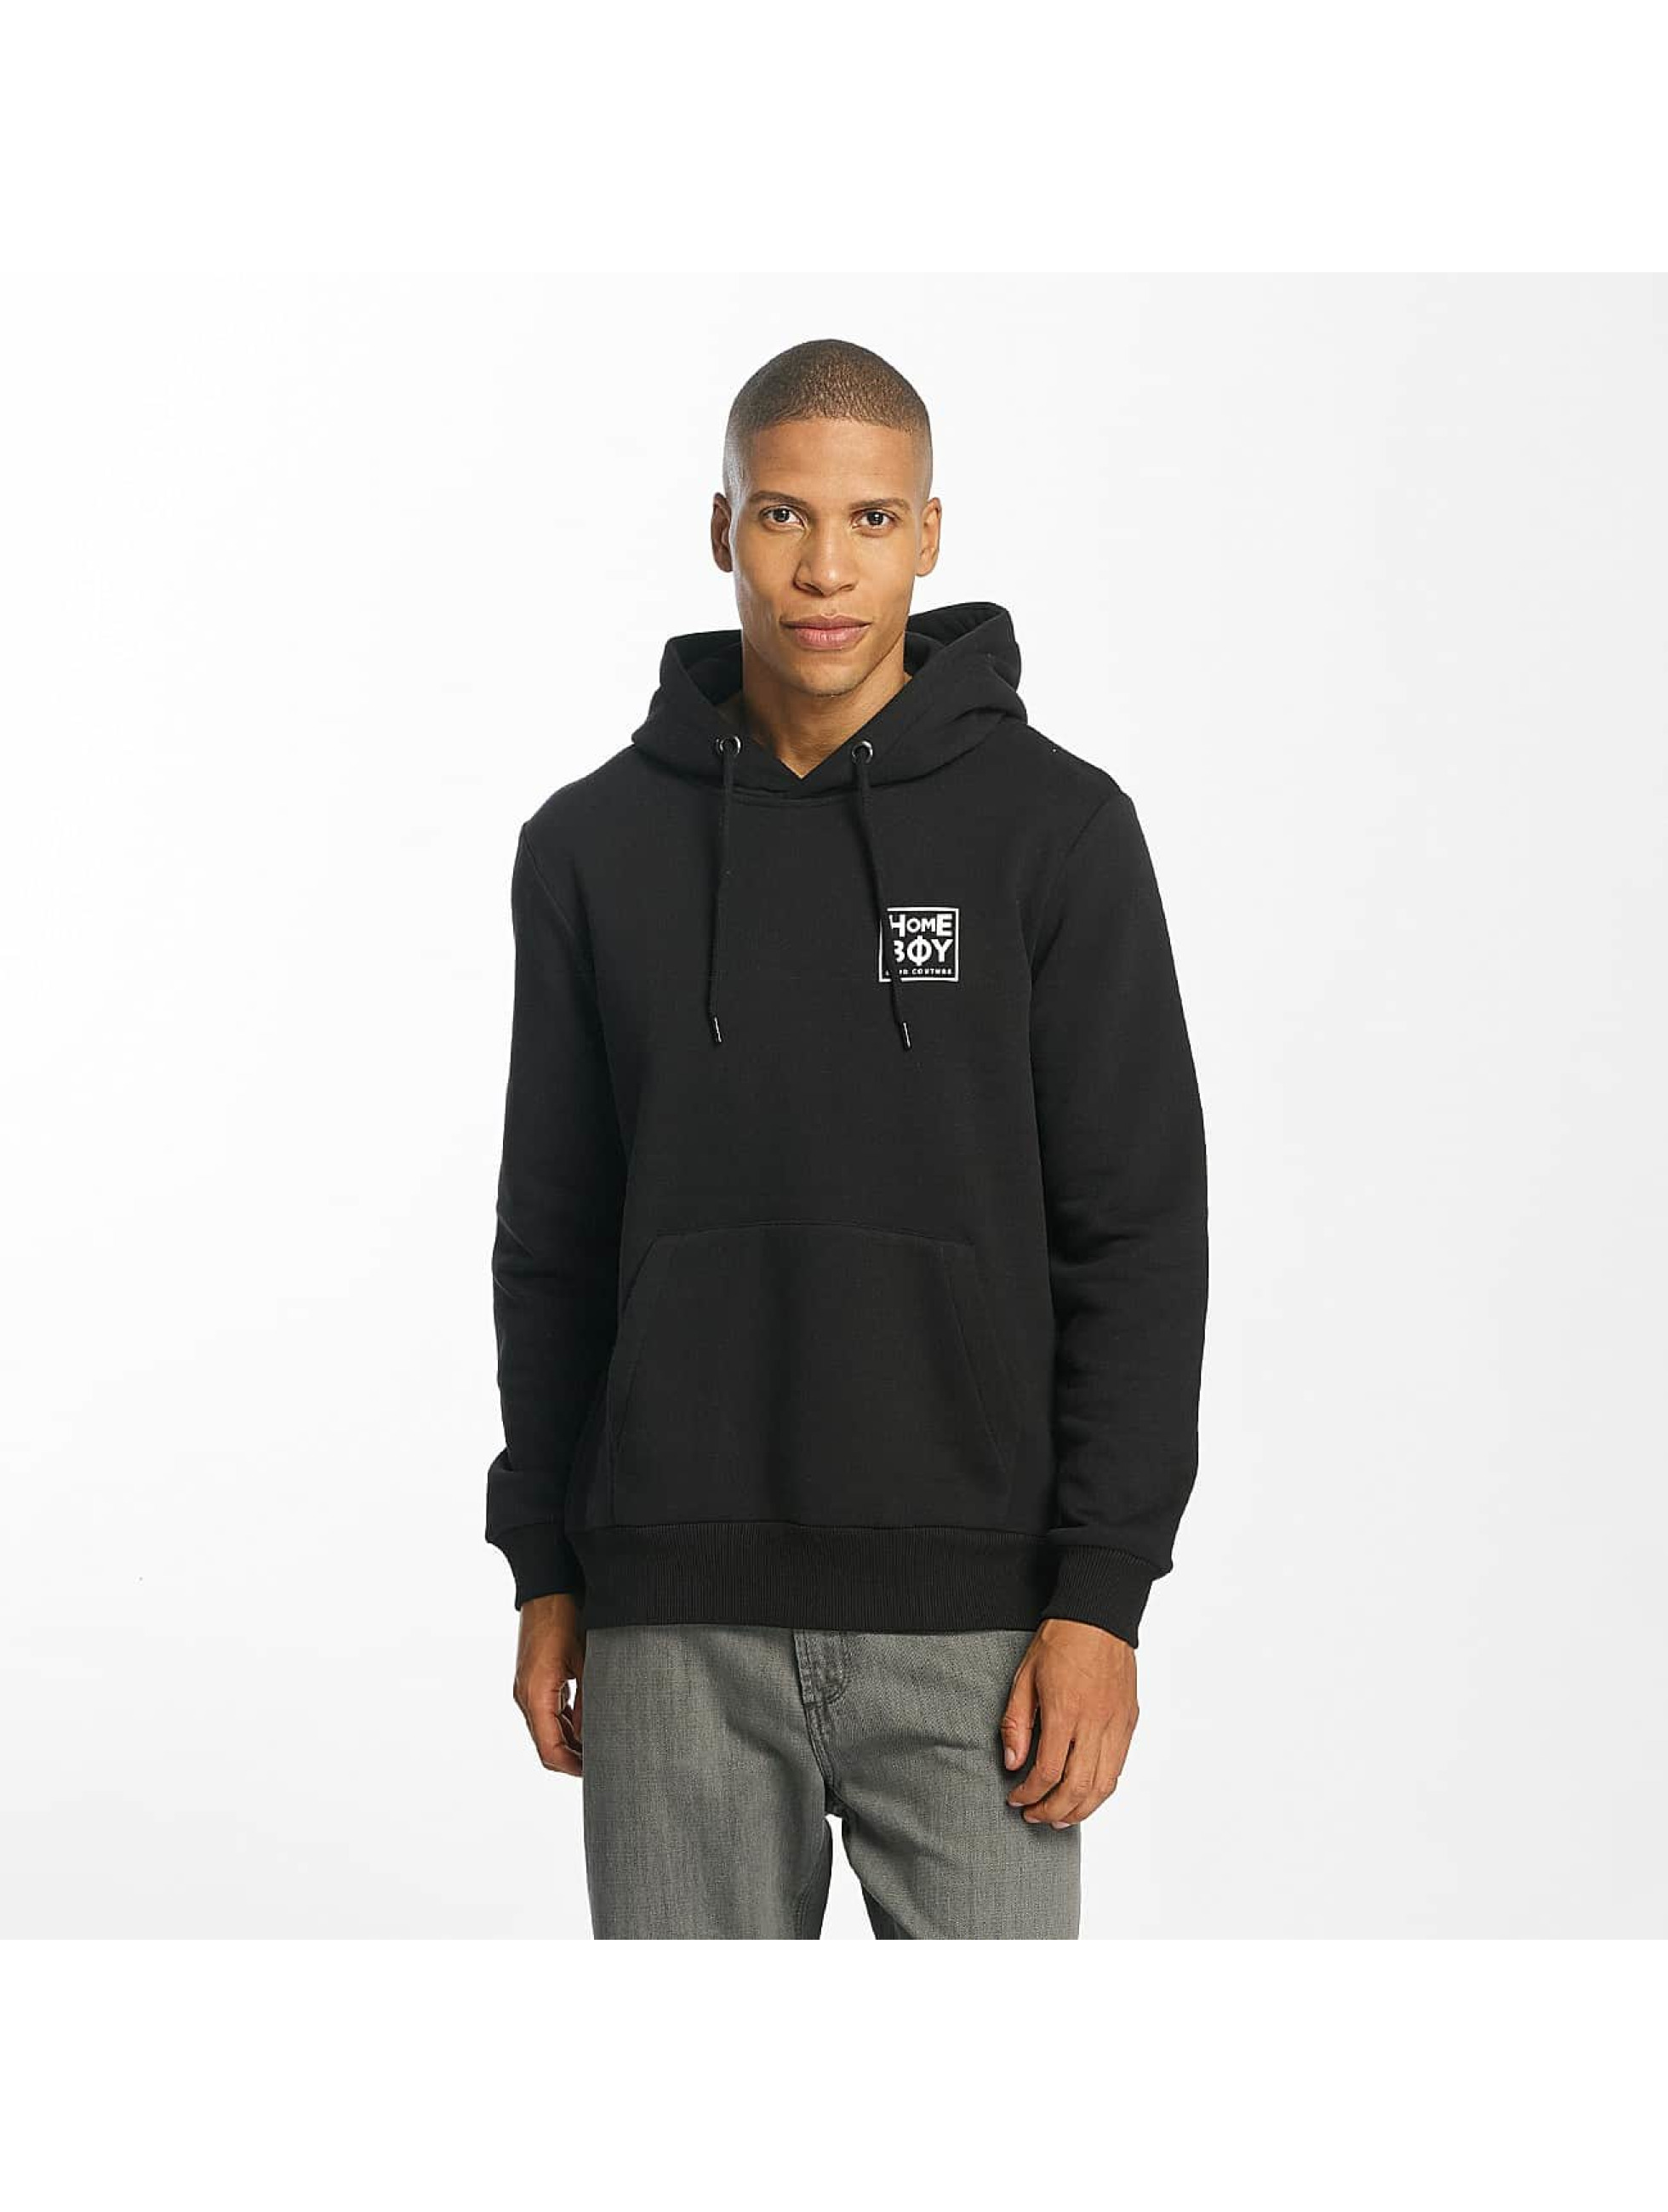 Homeboy Hoodie Neighbor Hood black